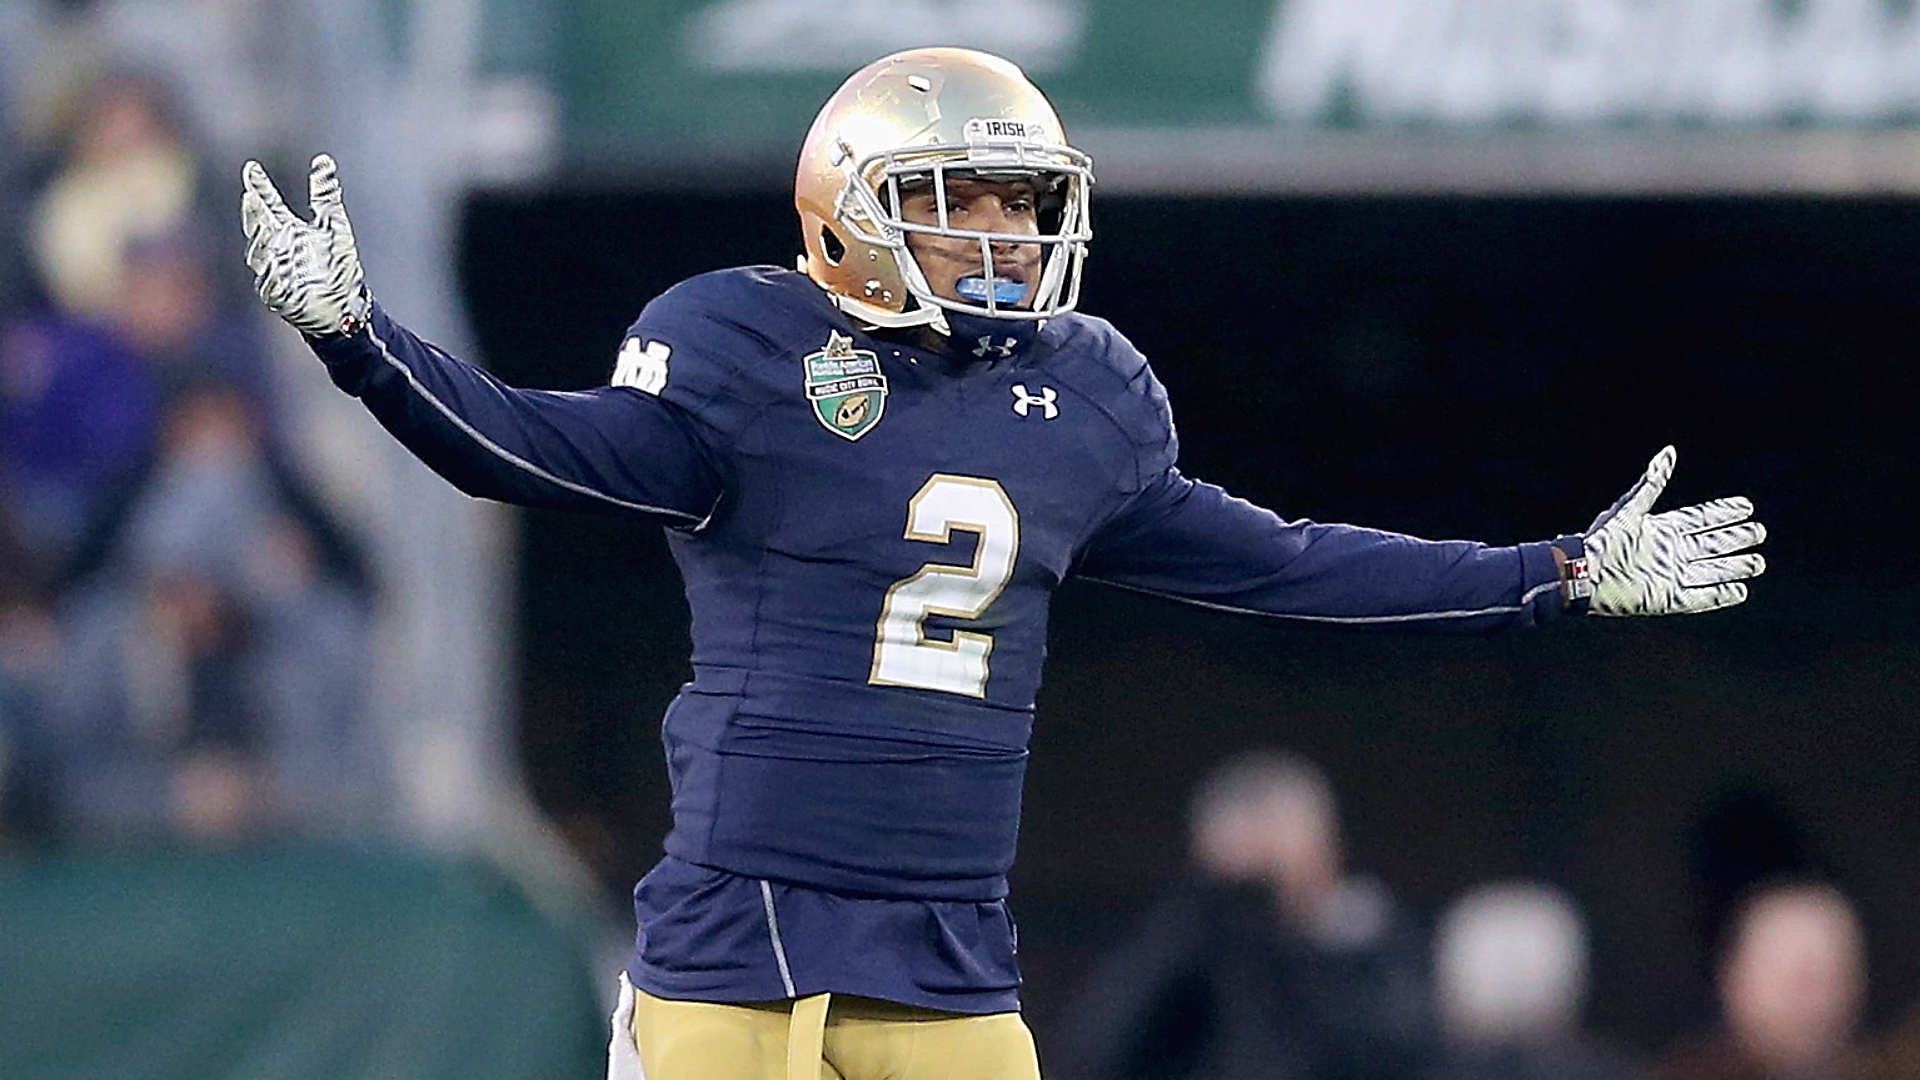 Cody Riggs hoping to shine at Notre Dame's pro day